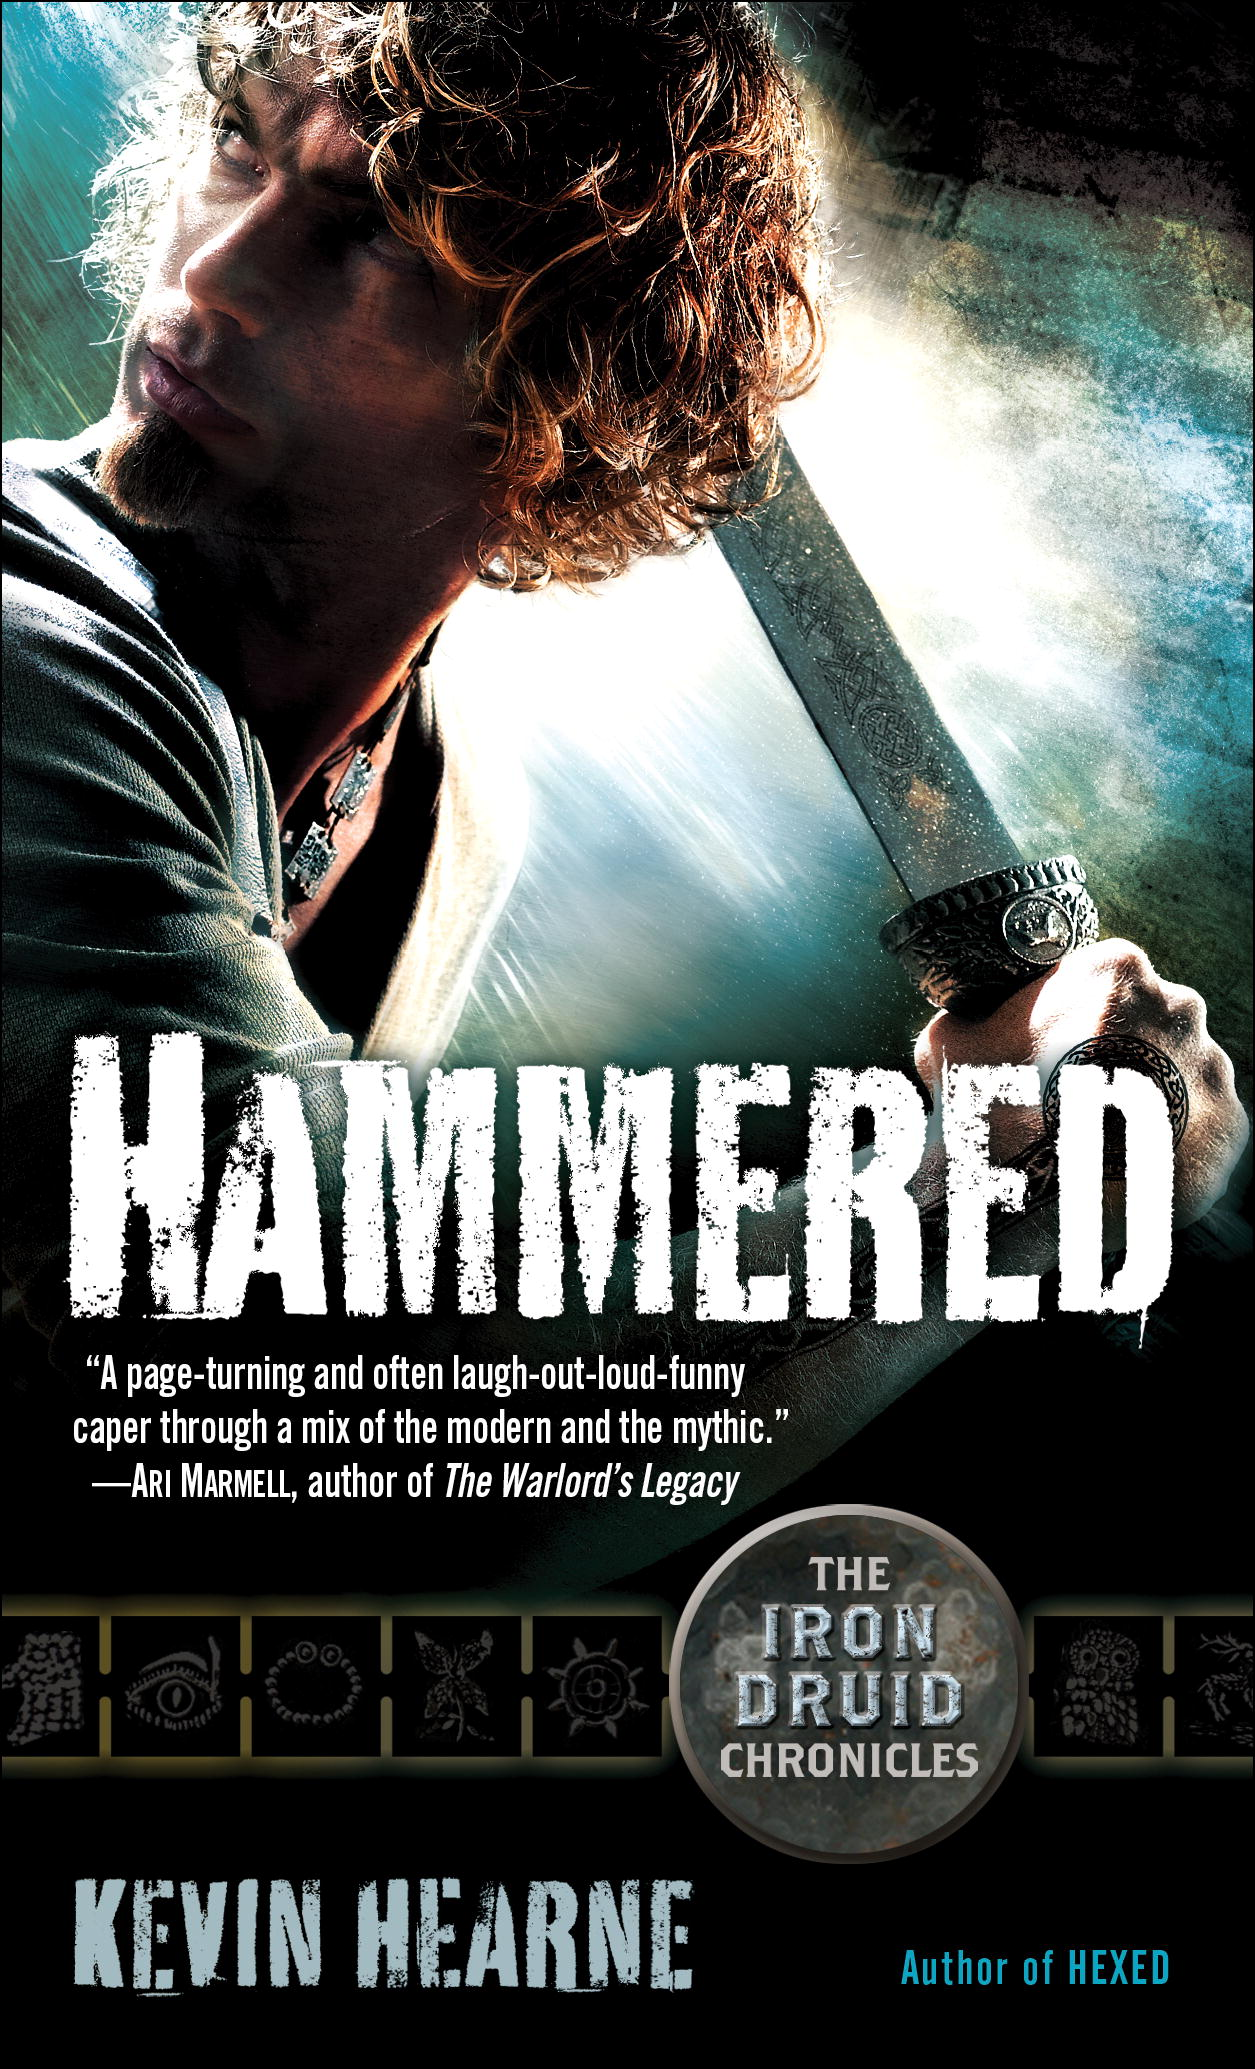 Iron Druid Chronicles - Book 3 - Hammered - Kevin Herne